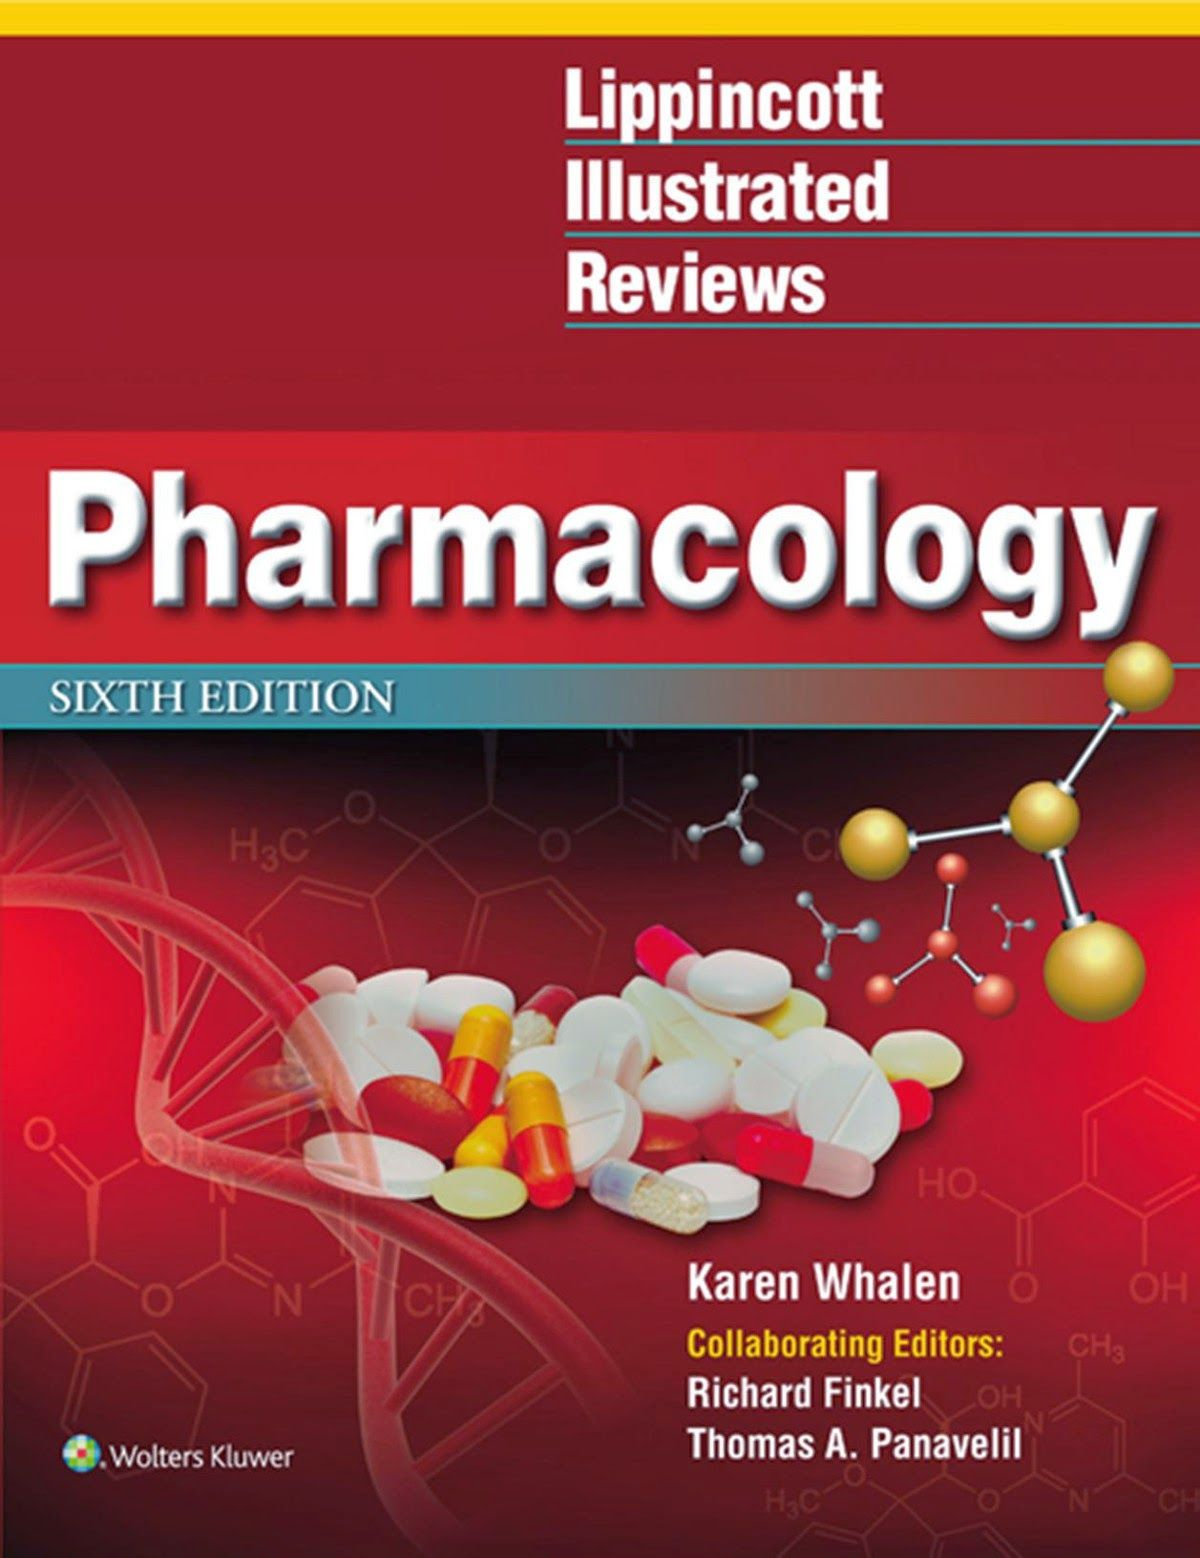 Download Lippincott Illustrated Reviews Pharmacology 6th edition pdf ...